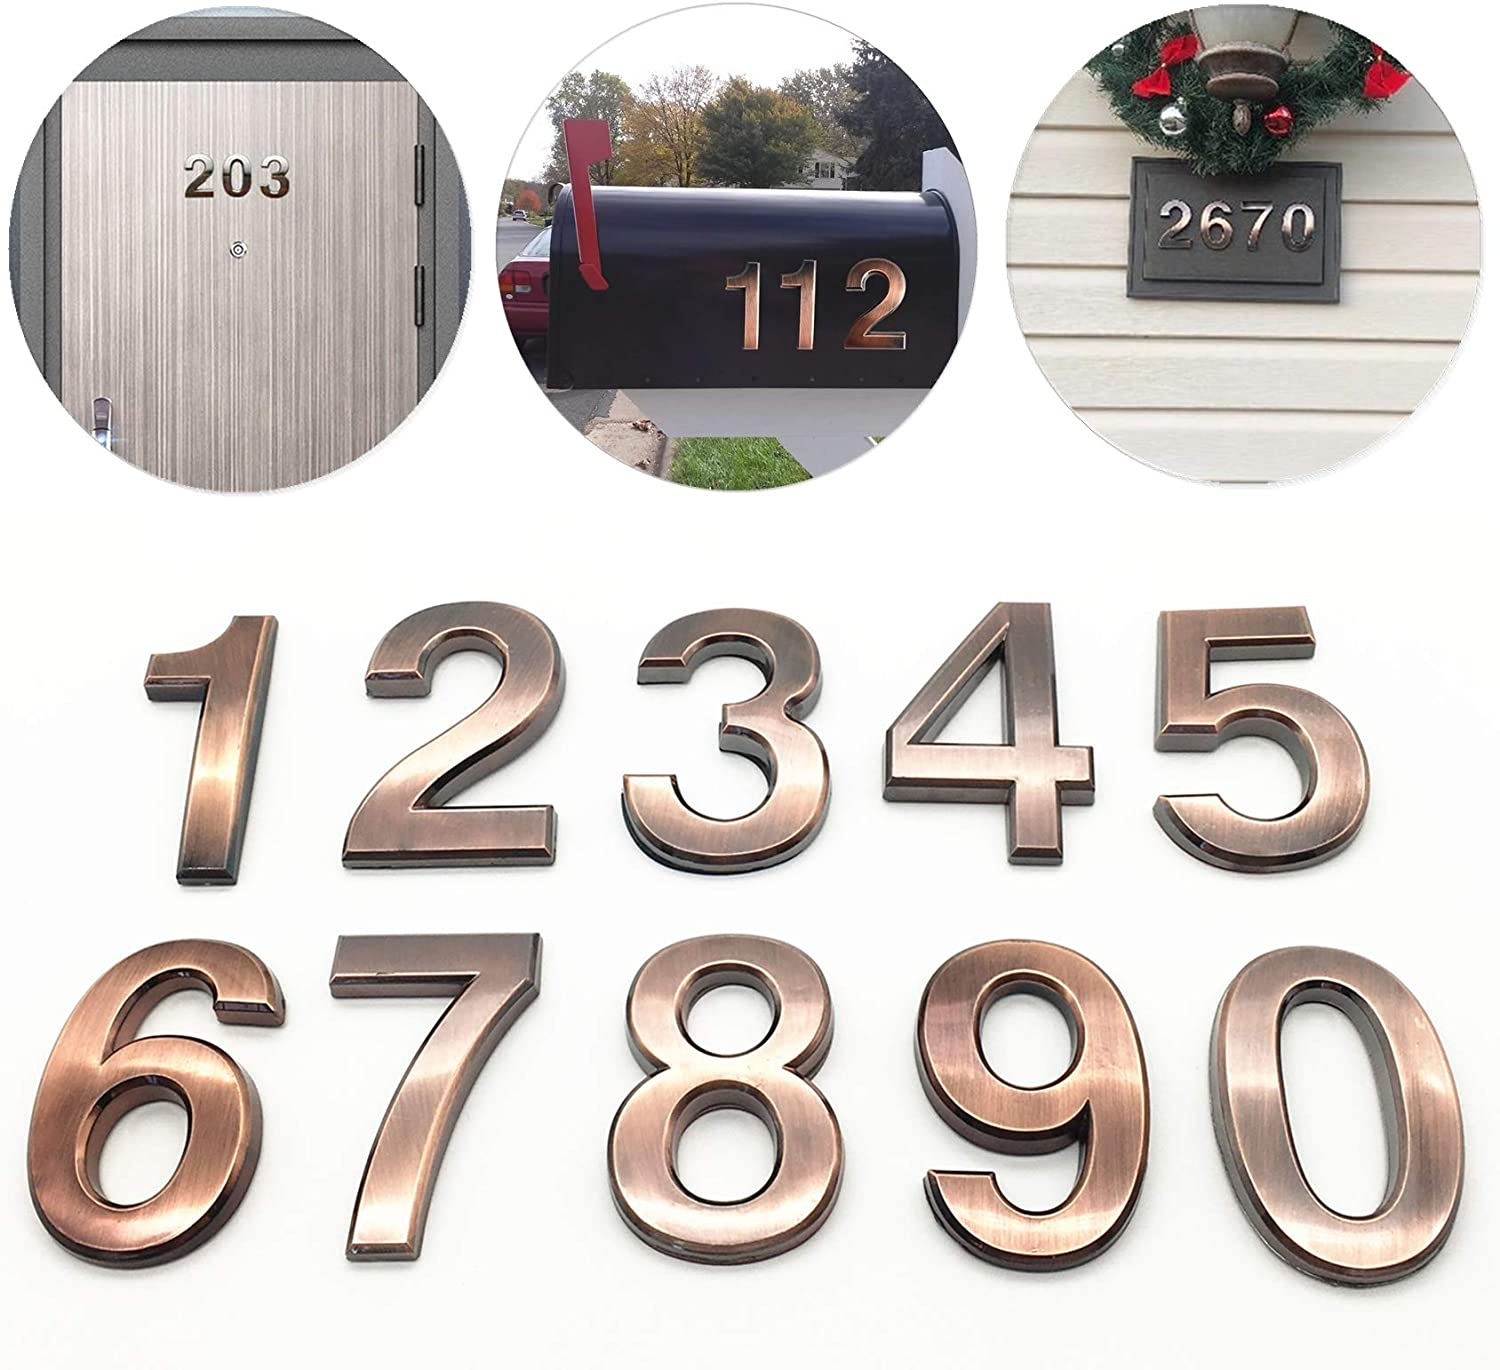 Gold Shining 4 inch Self Stick Mailbox Numbers 4 by FANXUS. 4 Double 4, Gold House Door Address Number Stickers for Apartments